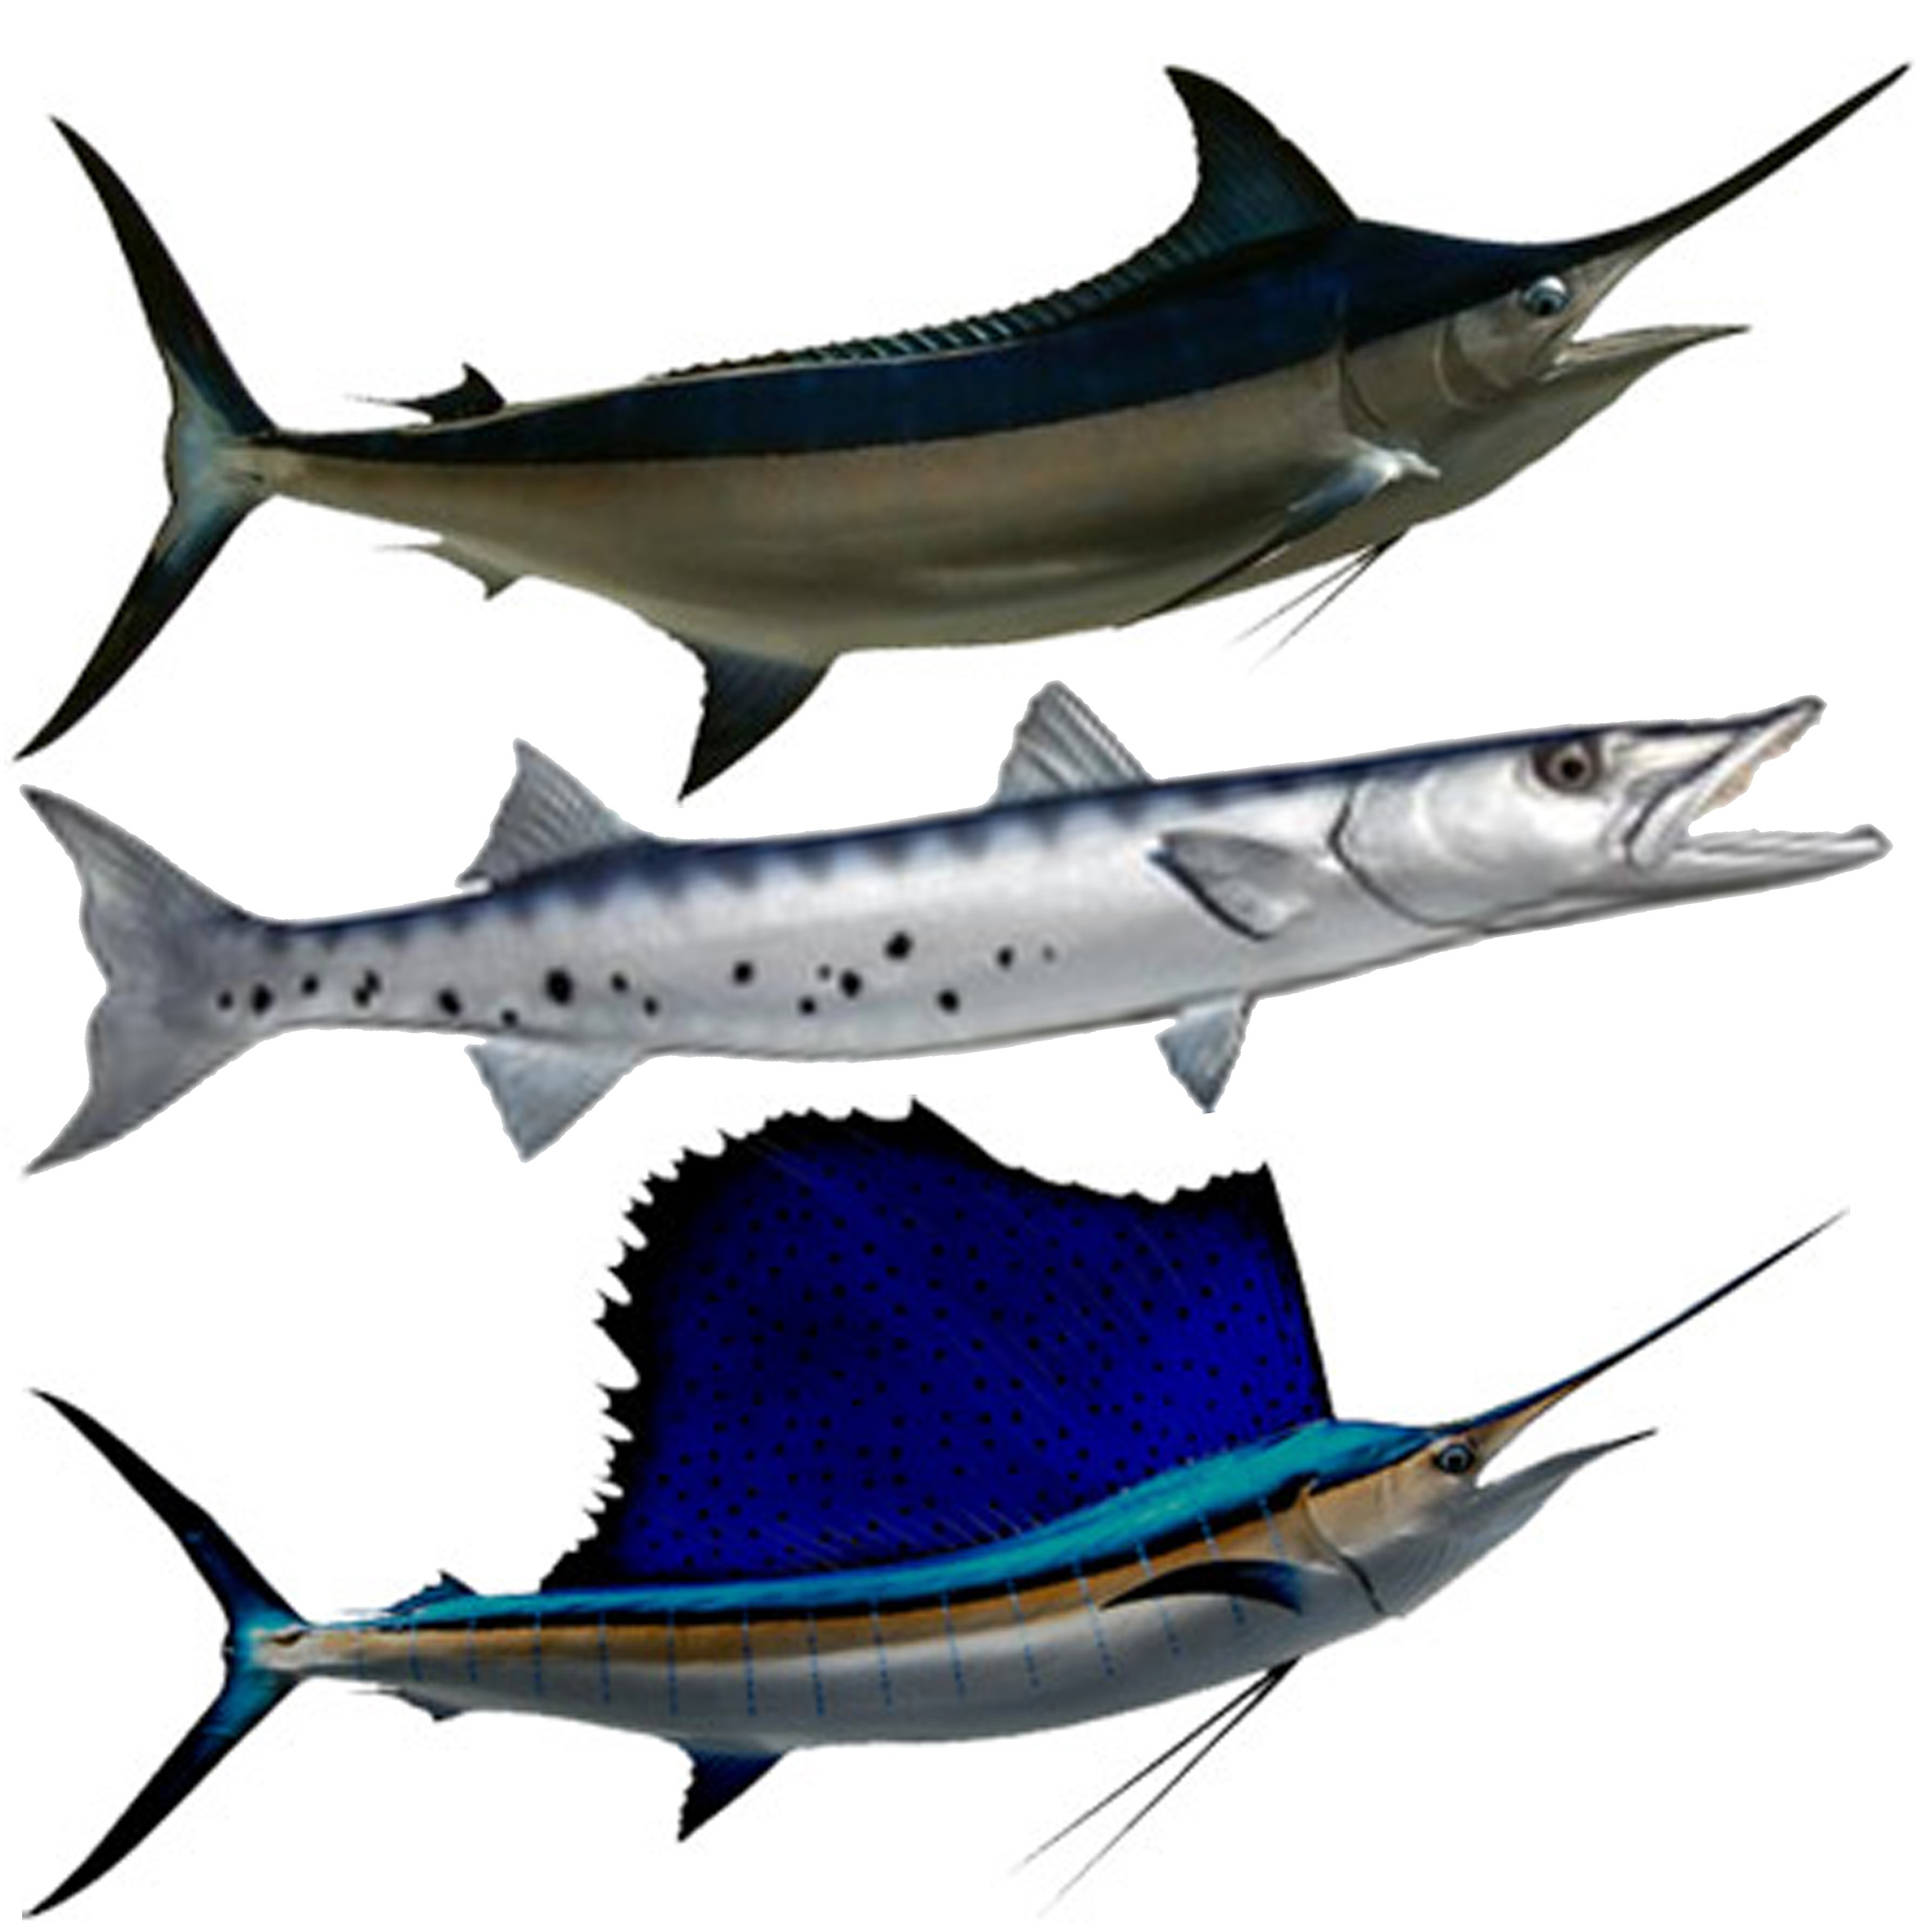 Other Species   Black Marlin, Barracuda and Sailfish are also taken from time to time. Black Marlin and Sailfish are rare, Barracuda much more common but not targeted.